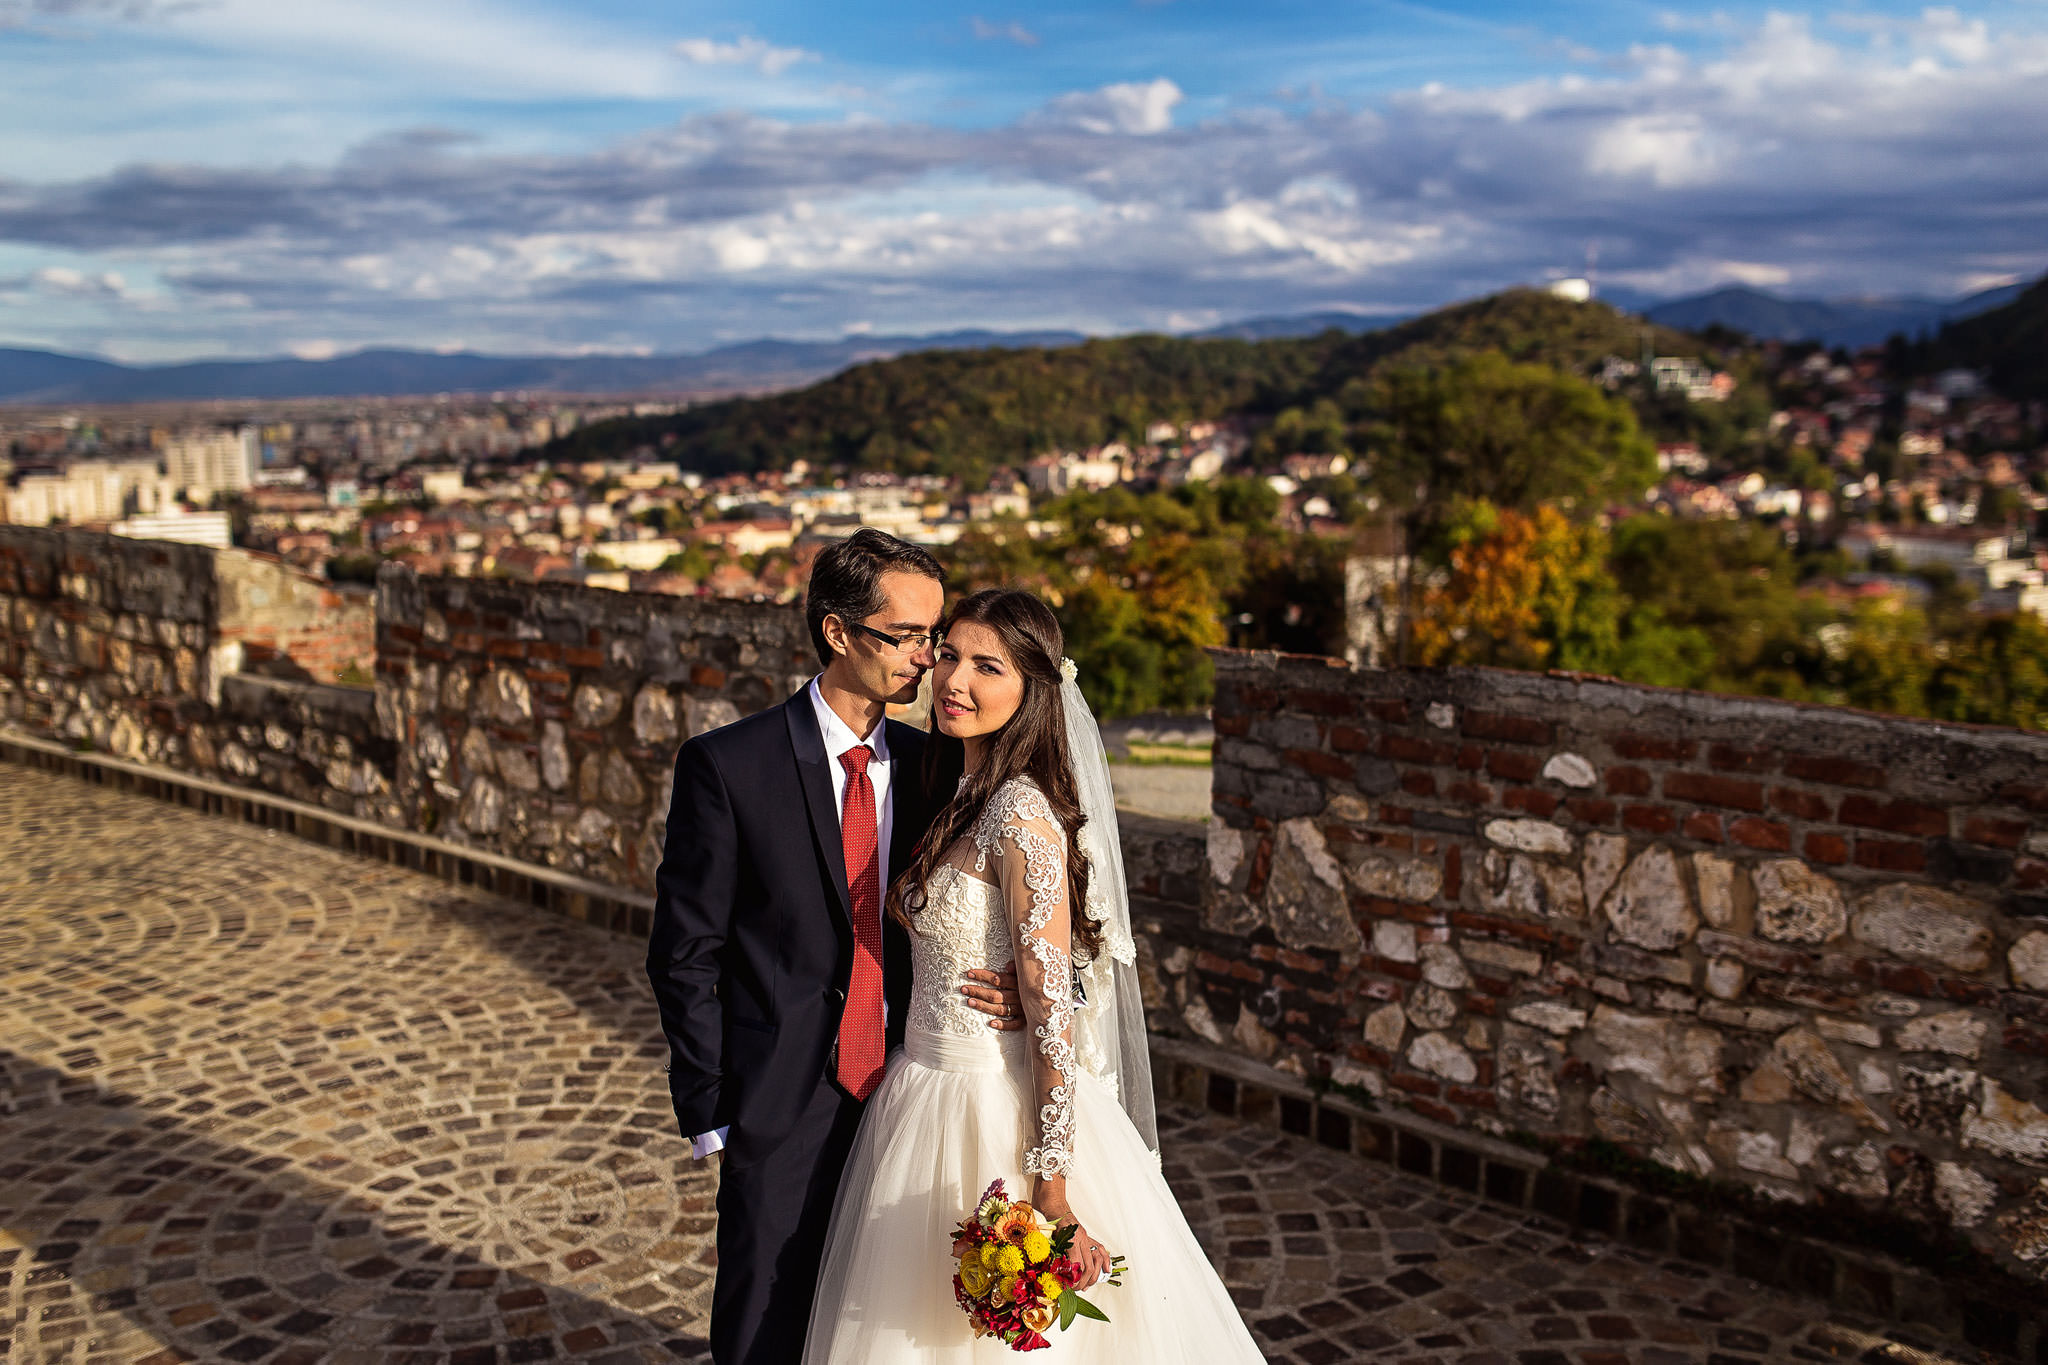 inspirephoto, fotograf profesionist, after wedding, trash the dress brasov